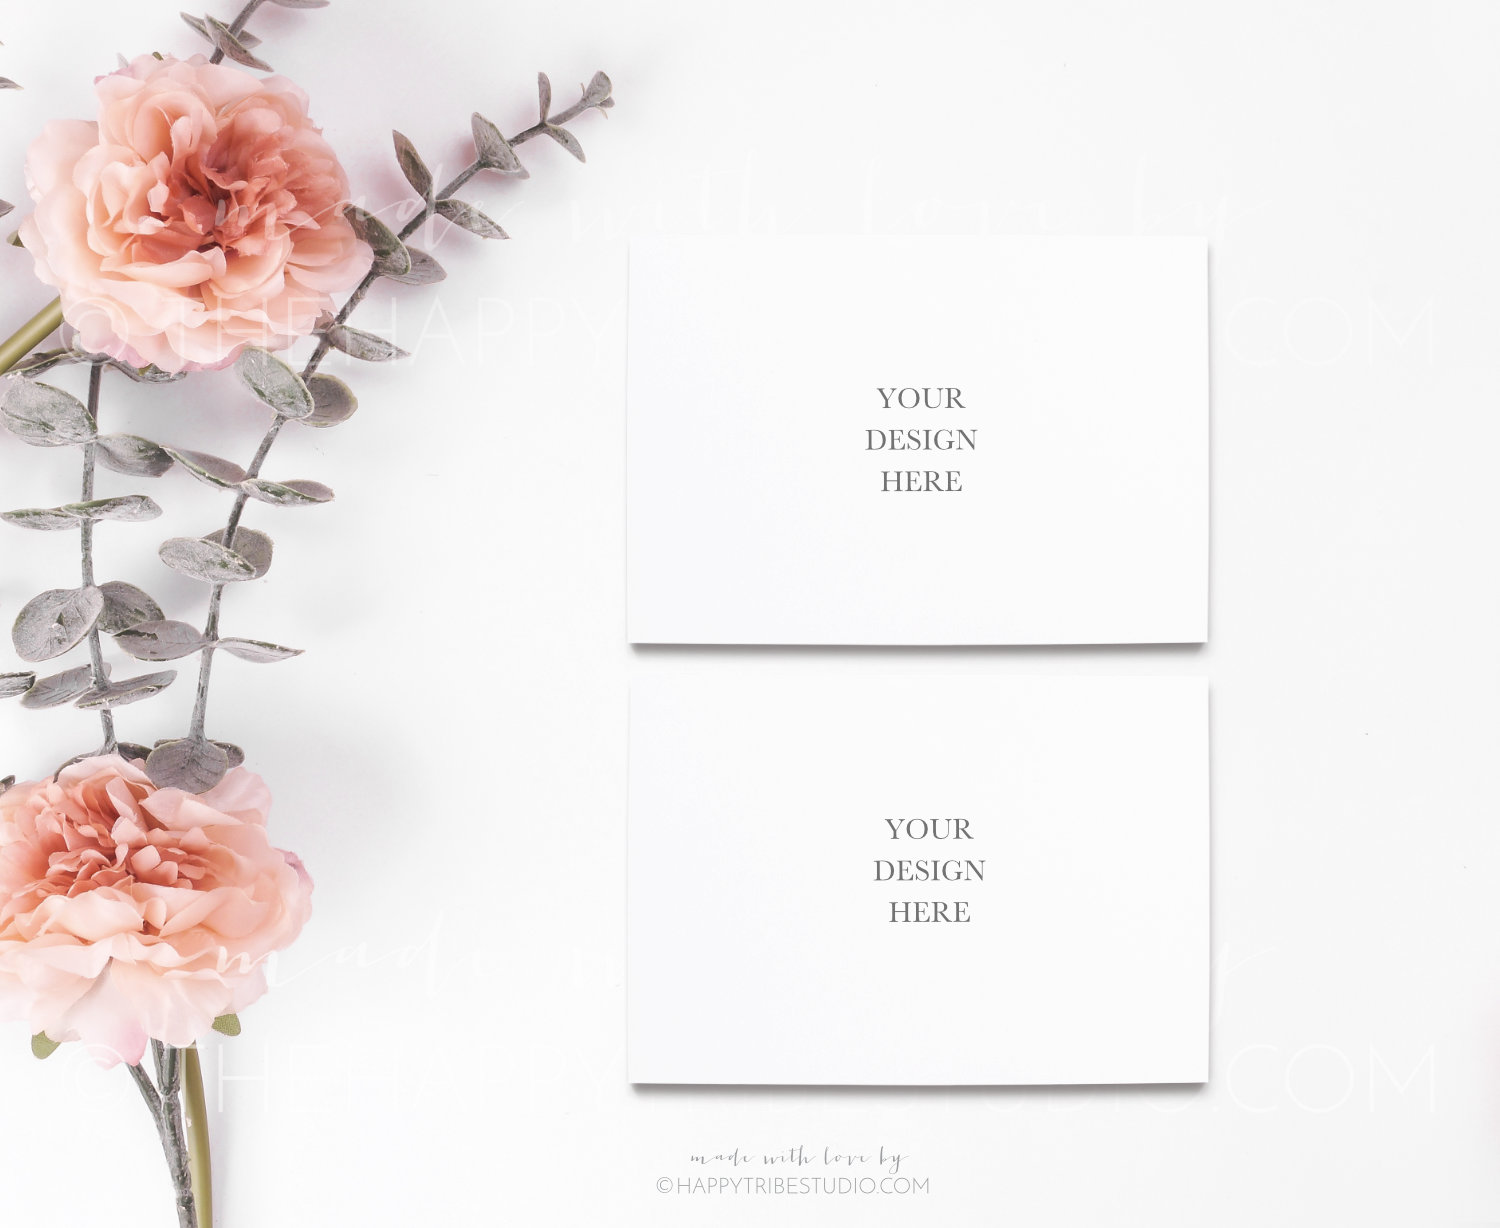 Stationery Mockup Bundle example image 6